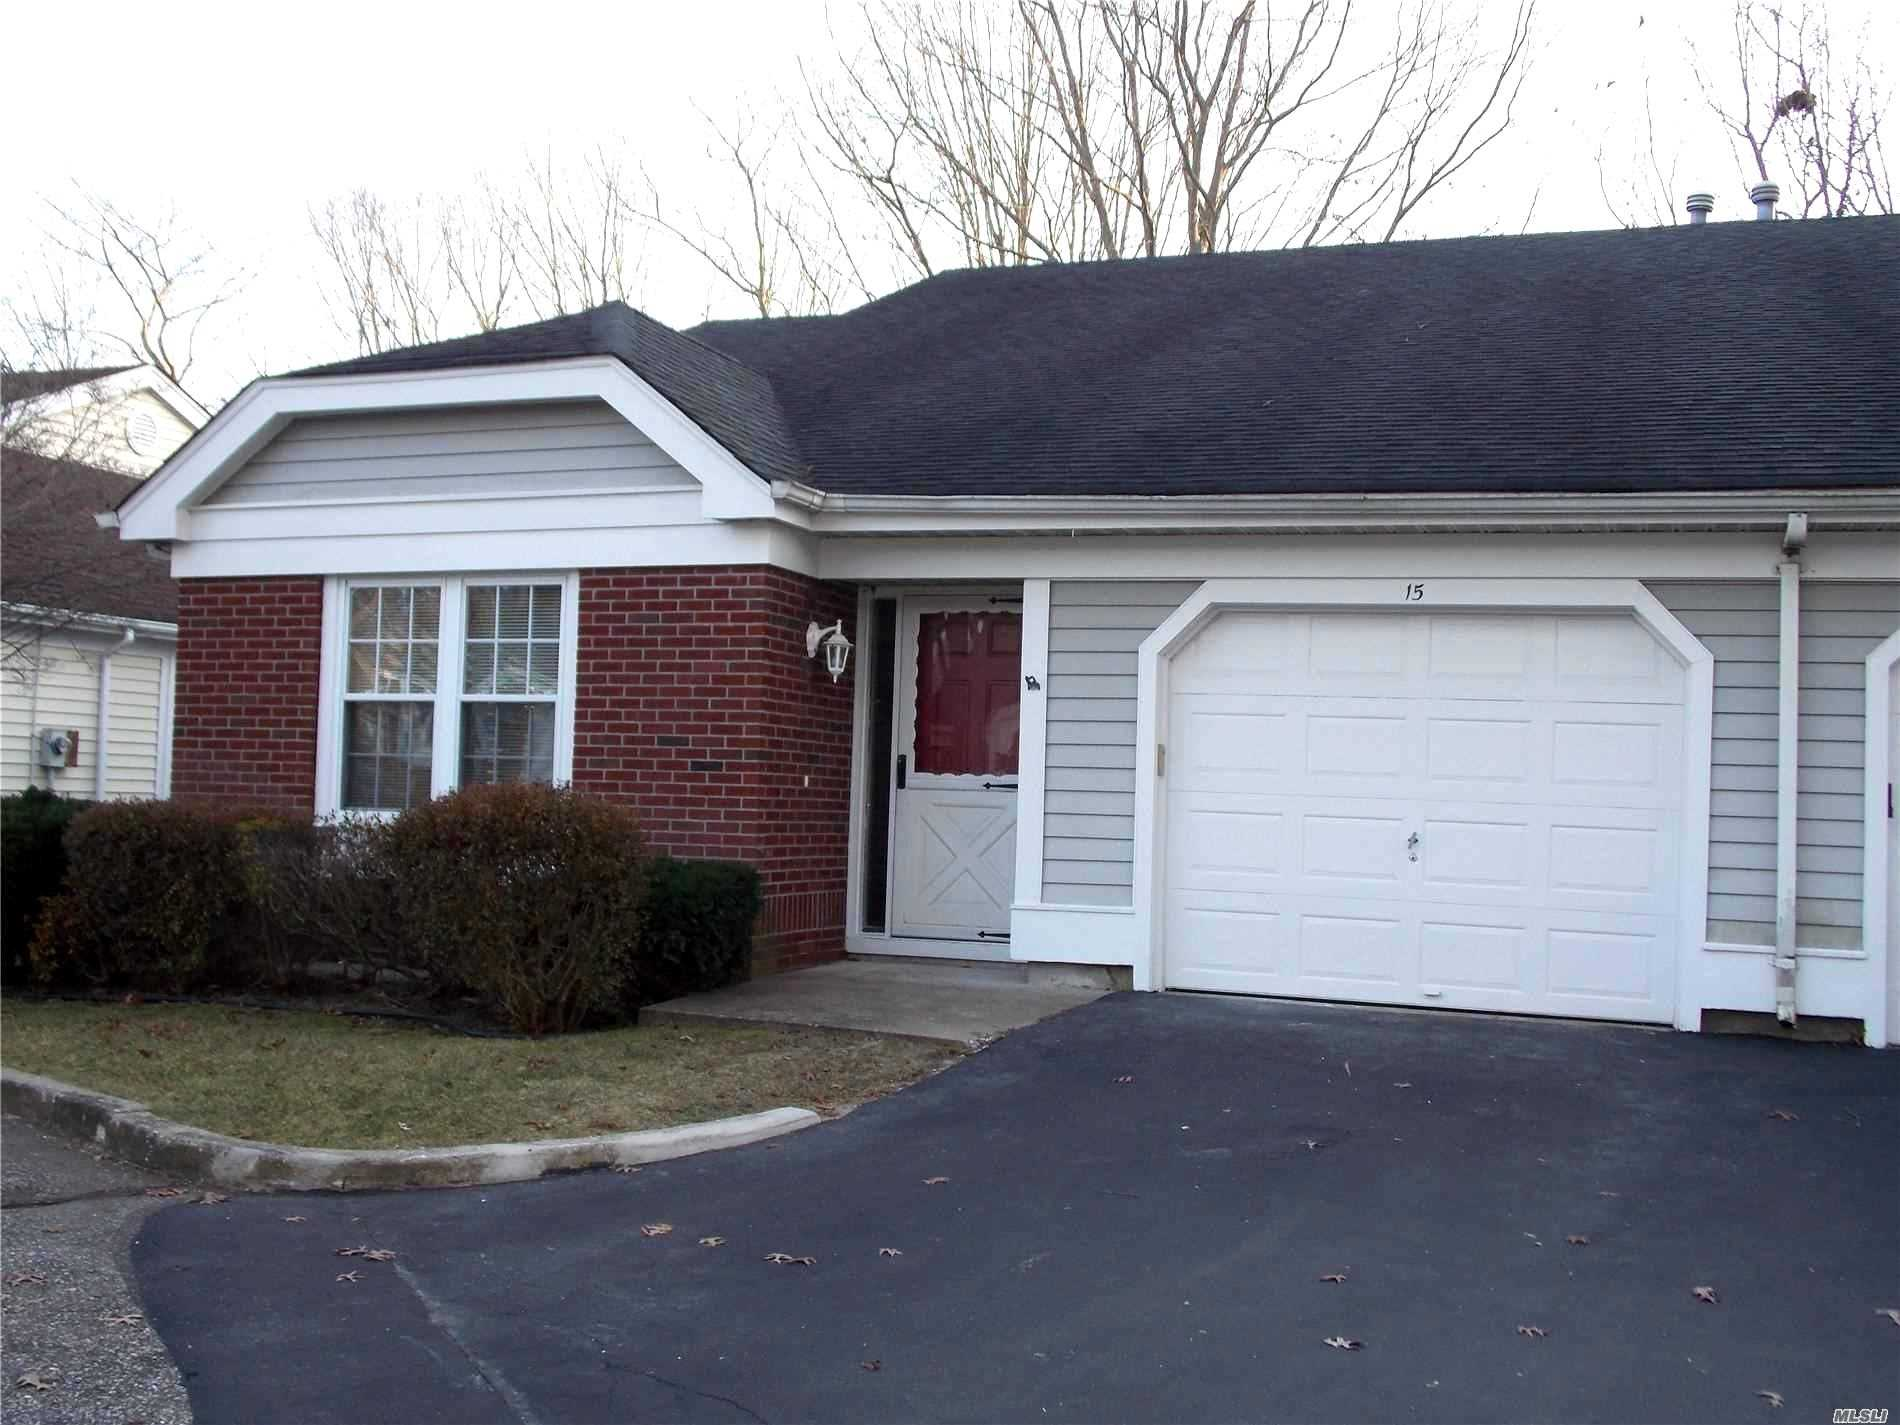 Updated Warwick Model In A 55 Plus Gated Community. Sunny & Bright With A Cul-De-Sac Location. Volume Ceilings, Updated Windows, New Bathrooms, Remote Lighted Ceiling Fans Carpeting , Kitchen Flooring & Counter Tops. Large Kitchen With Lots Of Cabinetry, Spacious Master Suite With Walk-In Closet And Additional Double Door Closet. Concrete Patio Off Kitchen & Private Yard. Well Maintained Active Community With Lots Of Activities. Community Location Is Convenient To Major Roadways, Shopping Etc